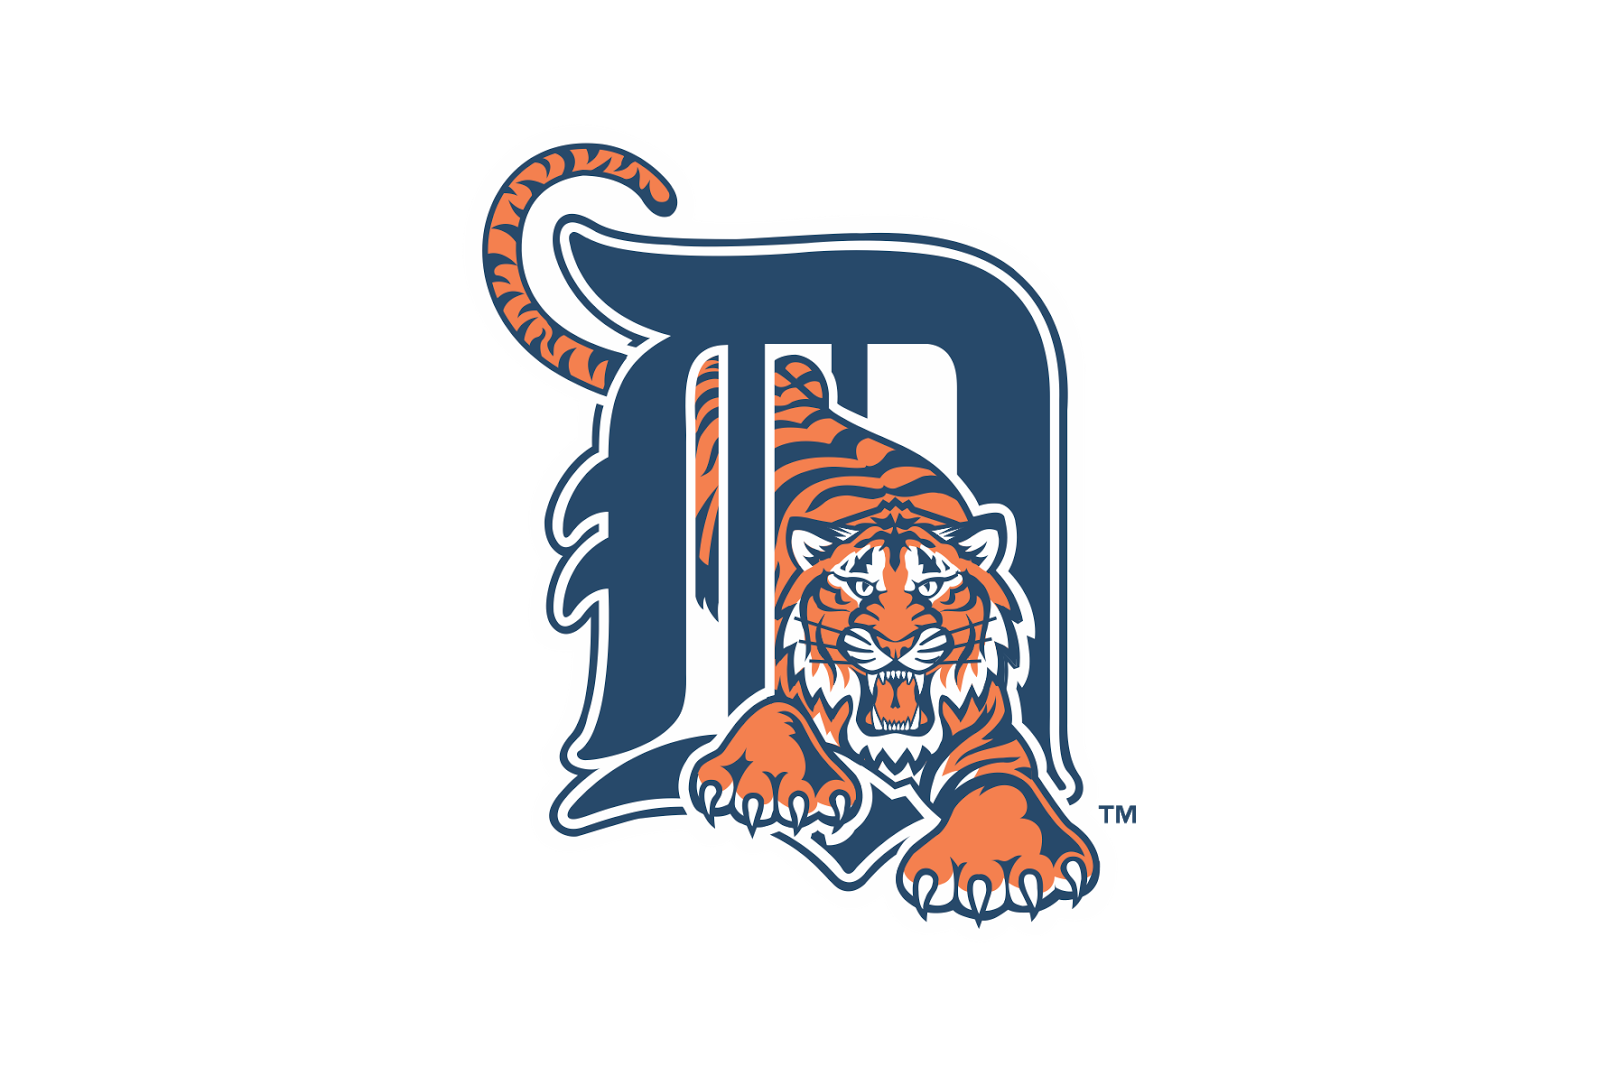 Detroit tigers logo png. Vector